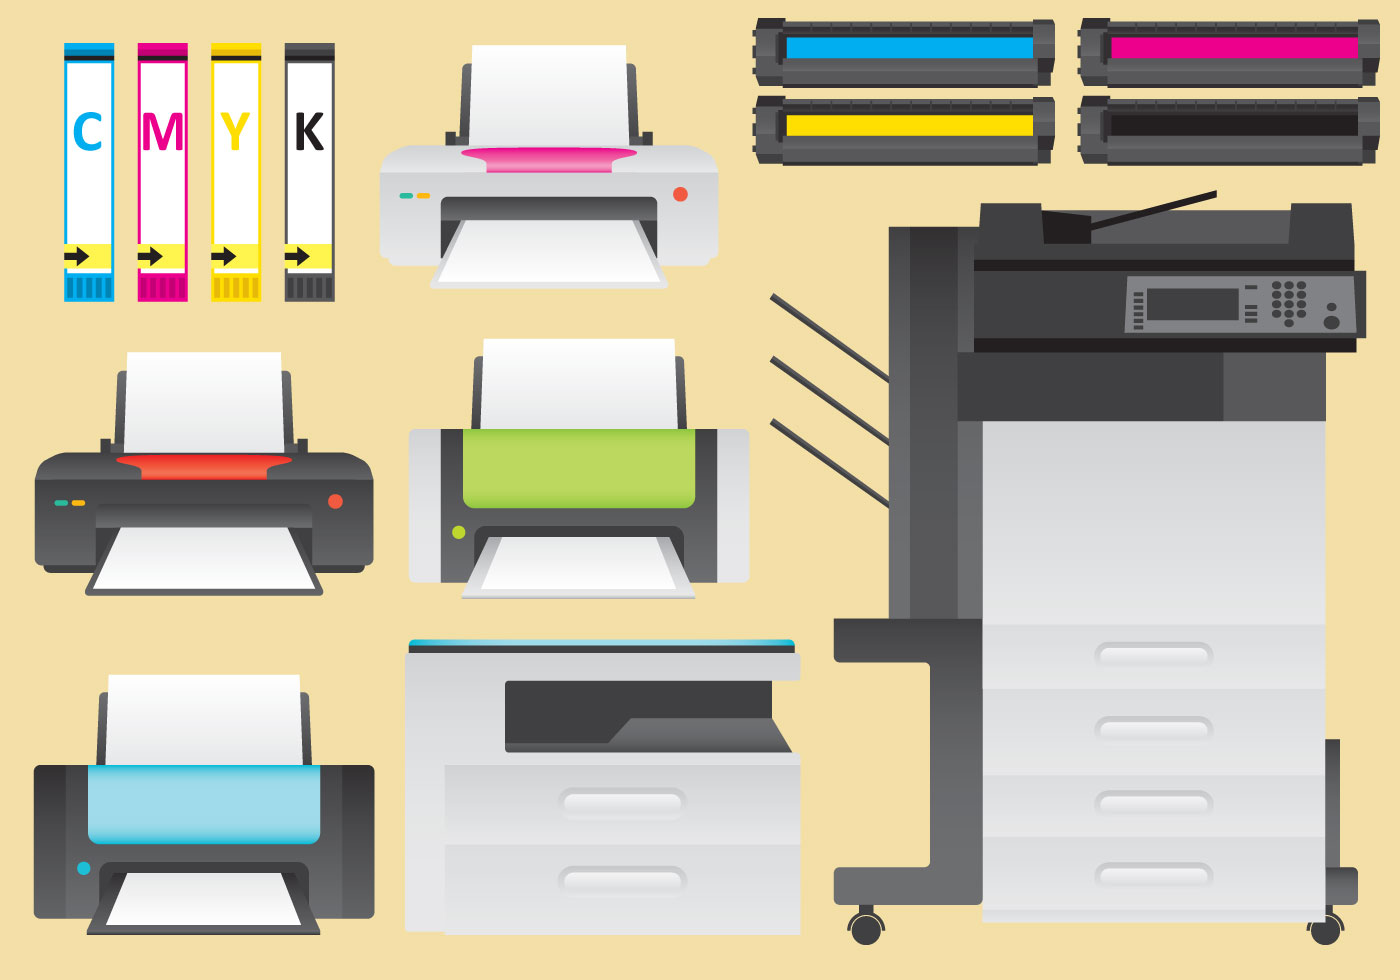 Laser Printer Or Ink Jet For Graphic Design